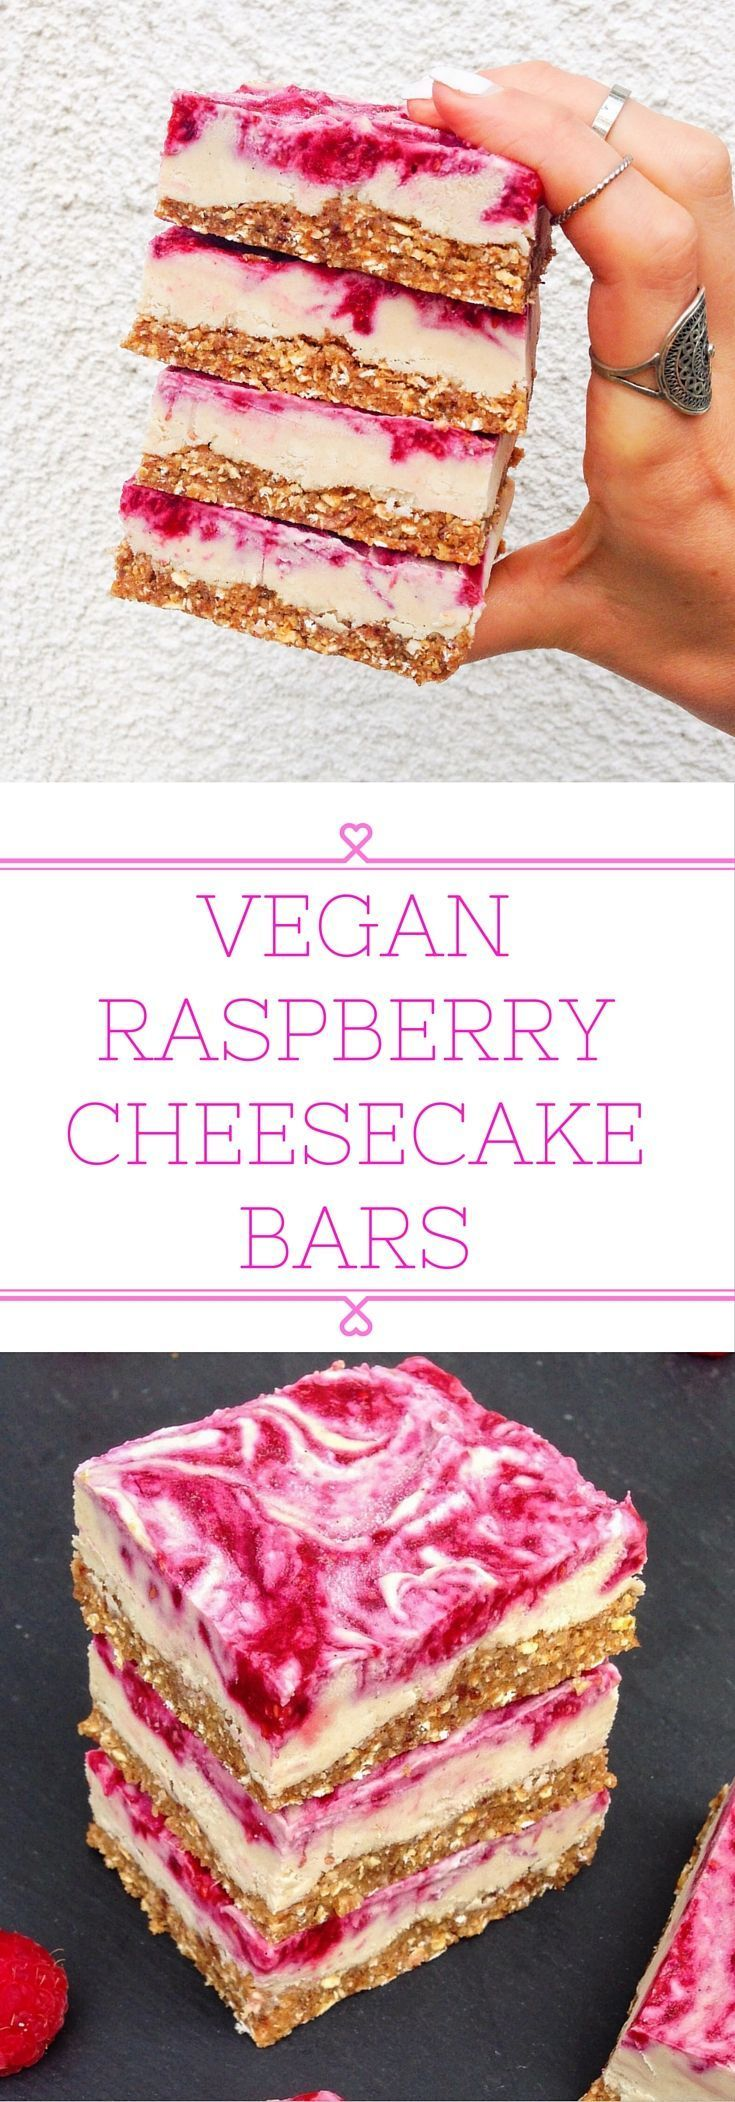 Vegan raspberry cheesecake bars that can be stored in the fridge for weeks! Simple and healthy ingredients. | http://choosingchia.com